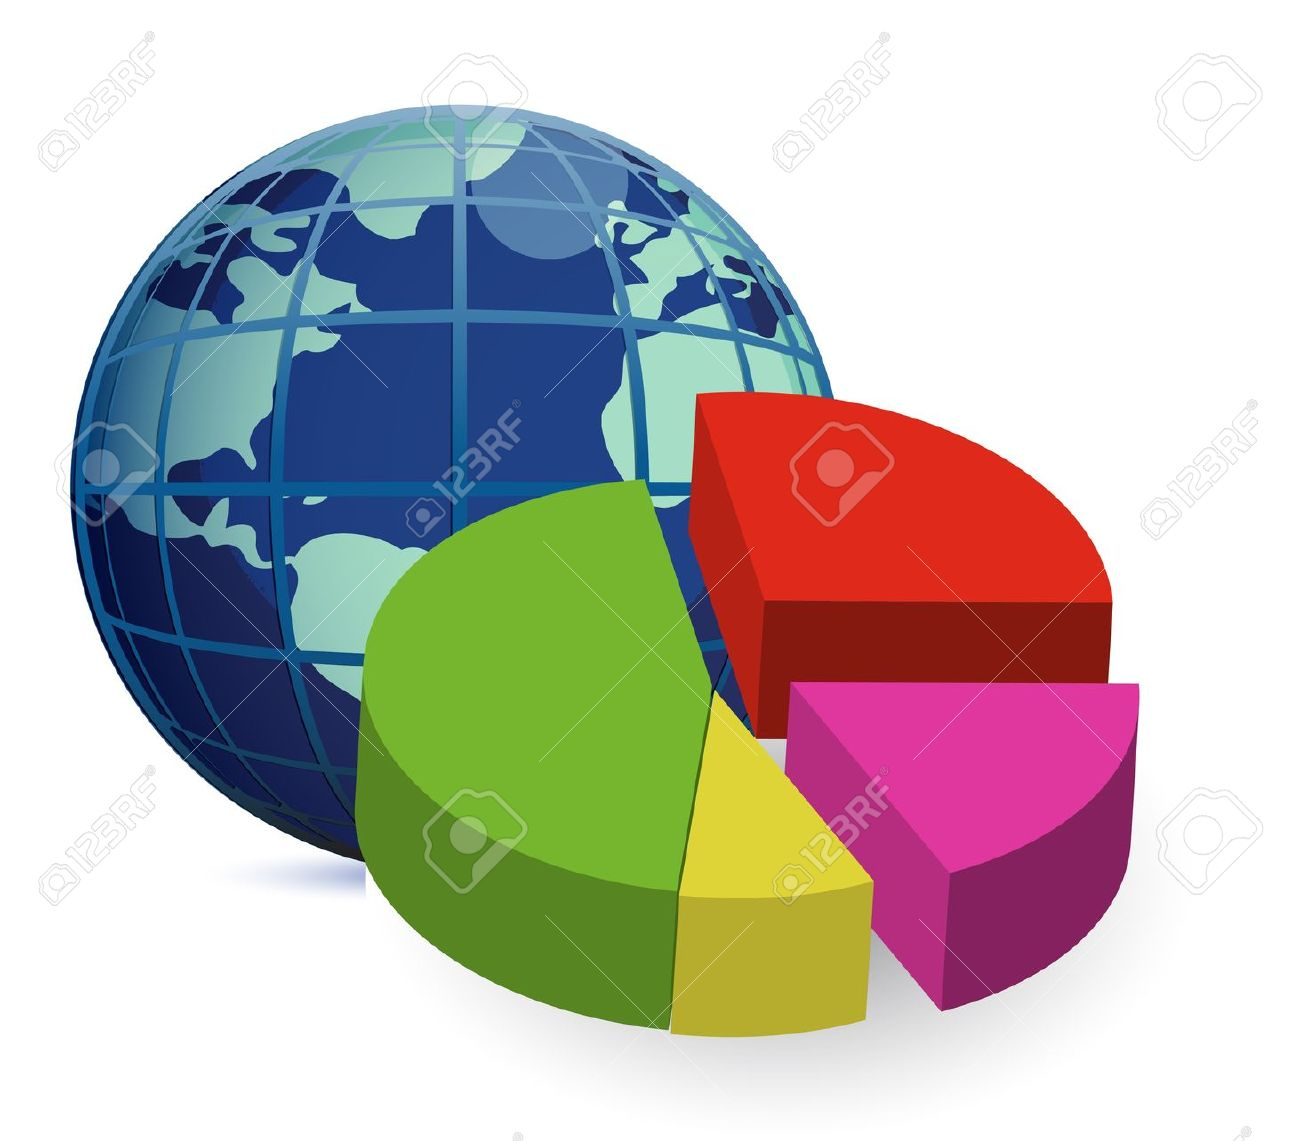 World Globe And A 3D Global Financial Economy Pie Chart Royalty.